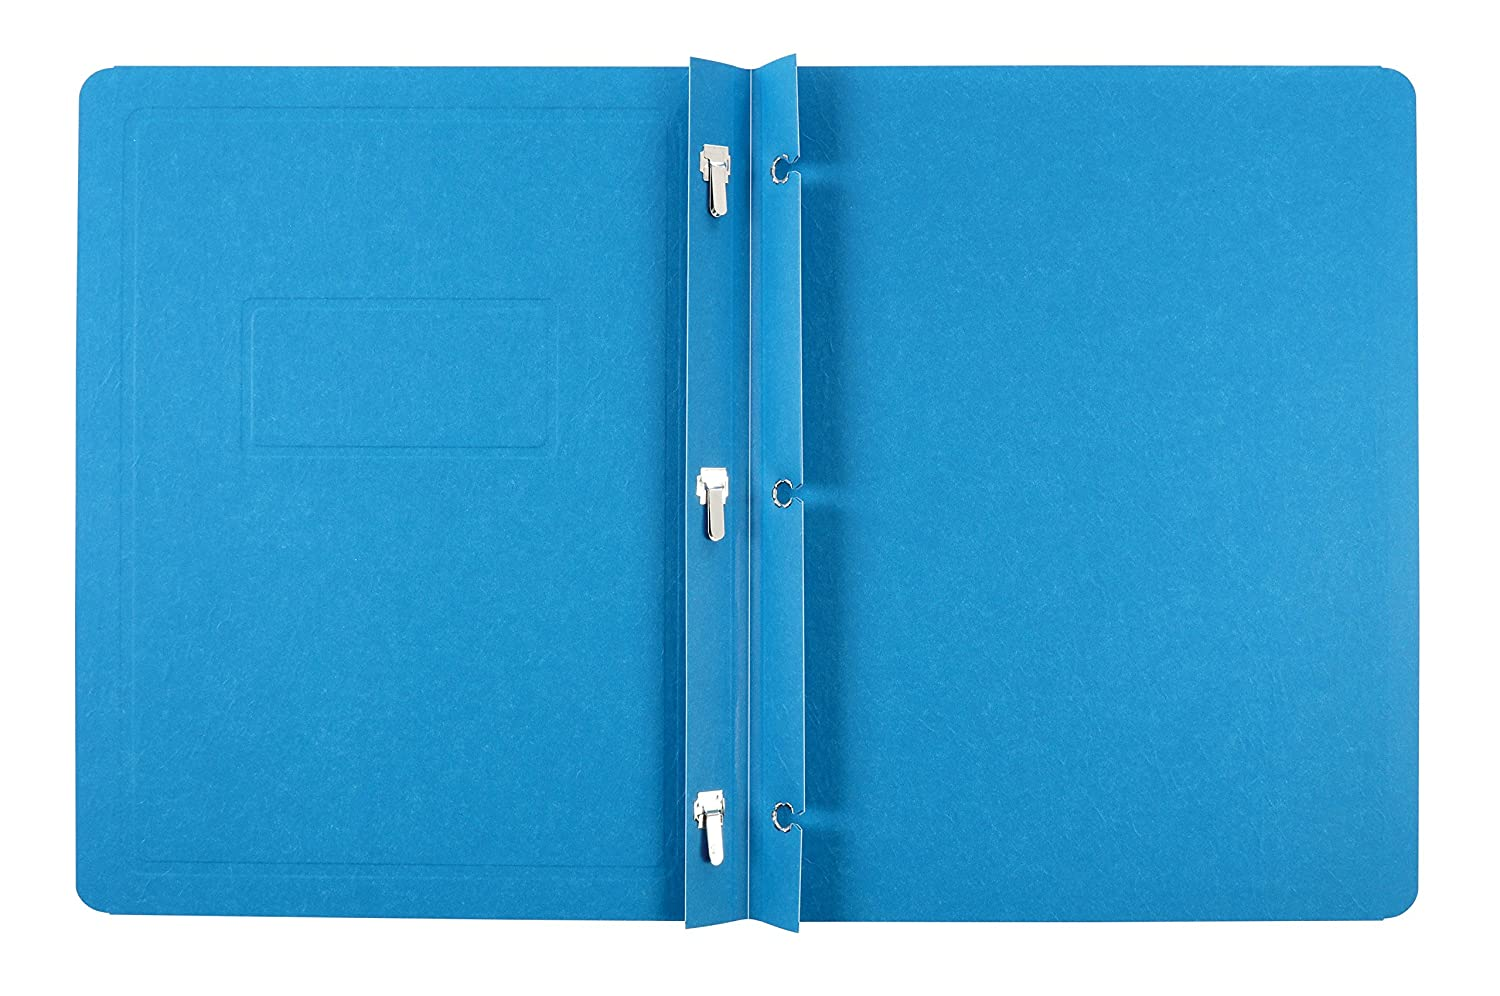 Oxford 52513 Panel and Border Leatherette Front Report Cover, Assorted Colors, 25 per Box Esselte Corporation